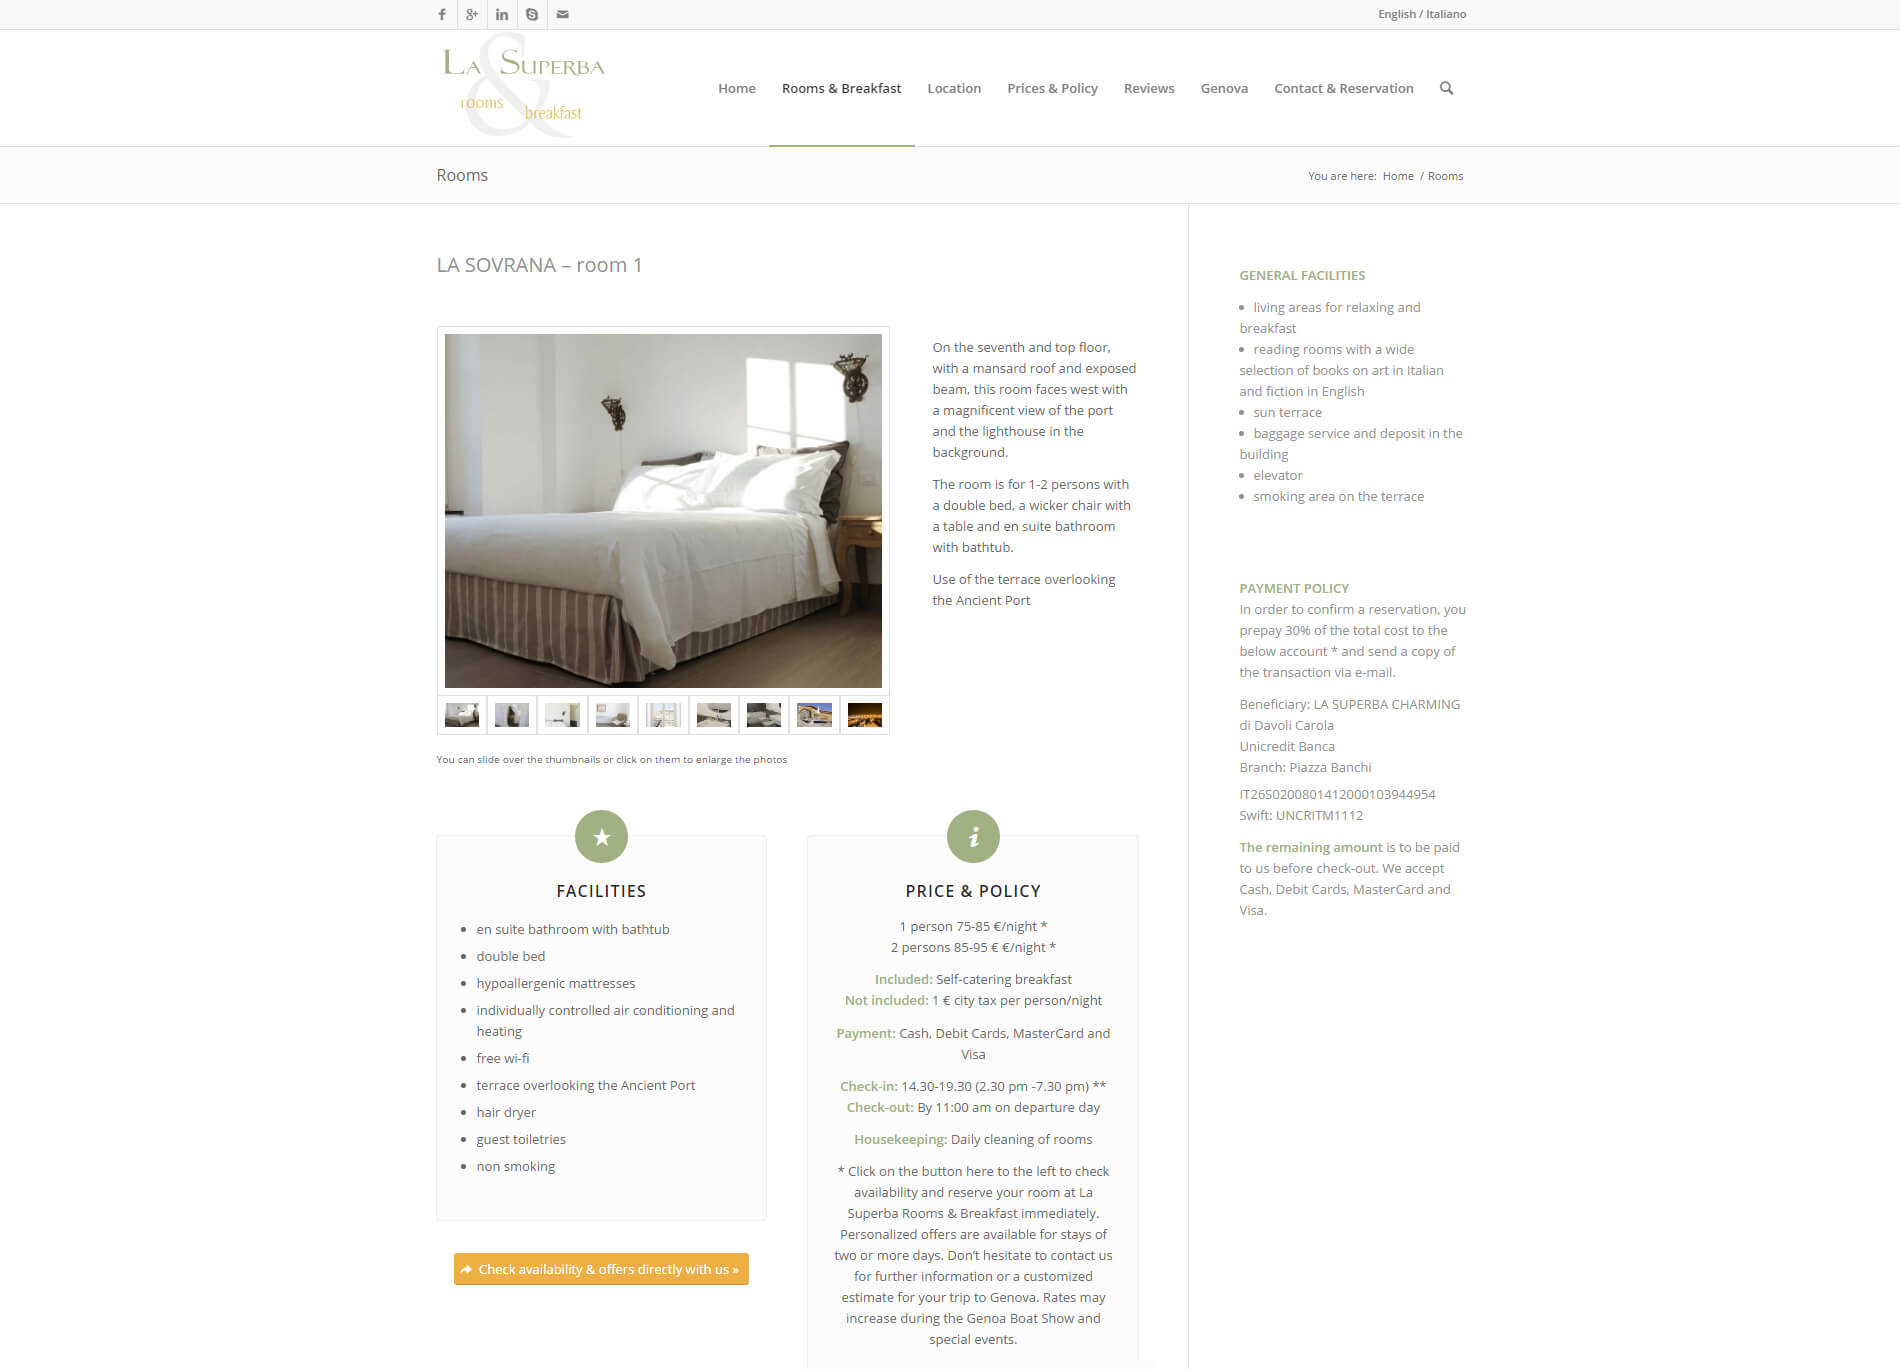 Web design anweb La Superba B&B Genua Italy